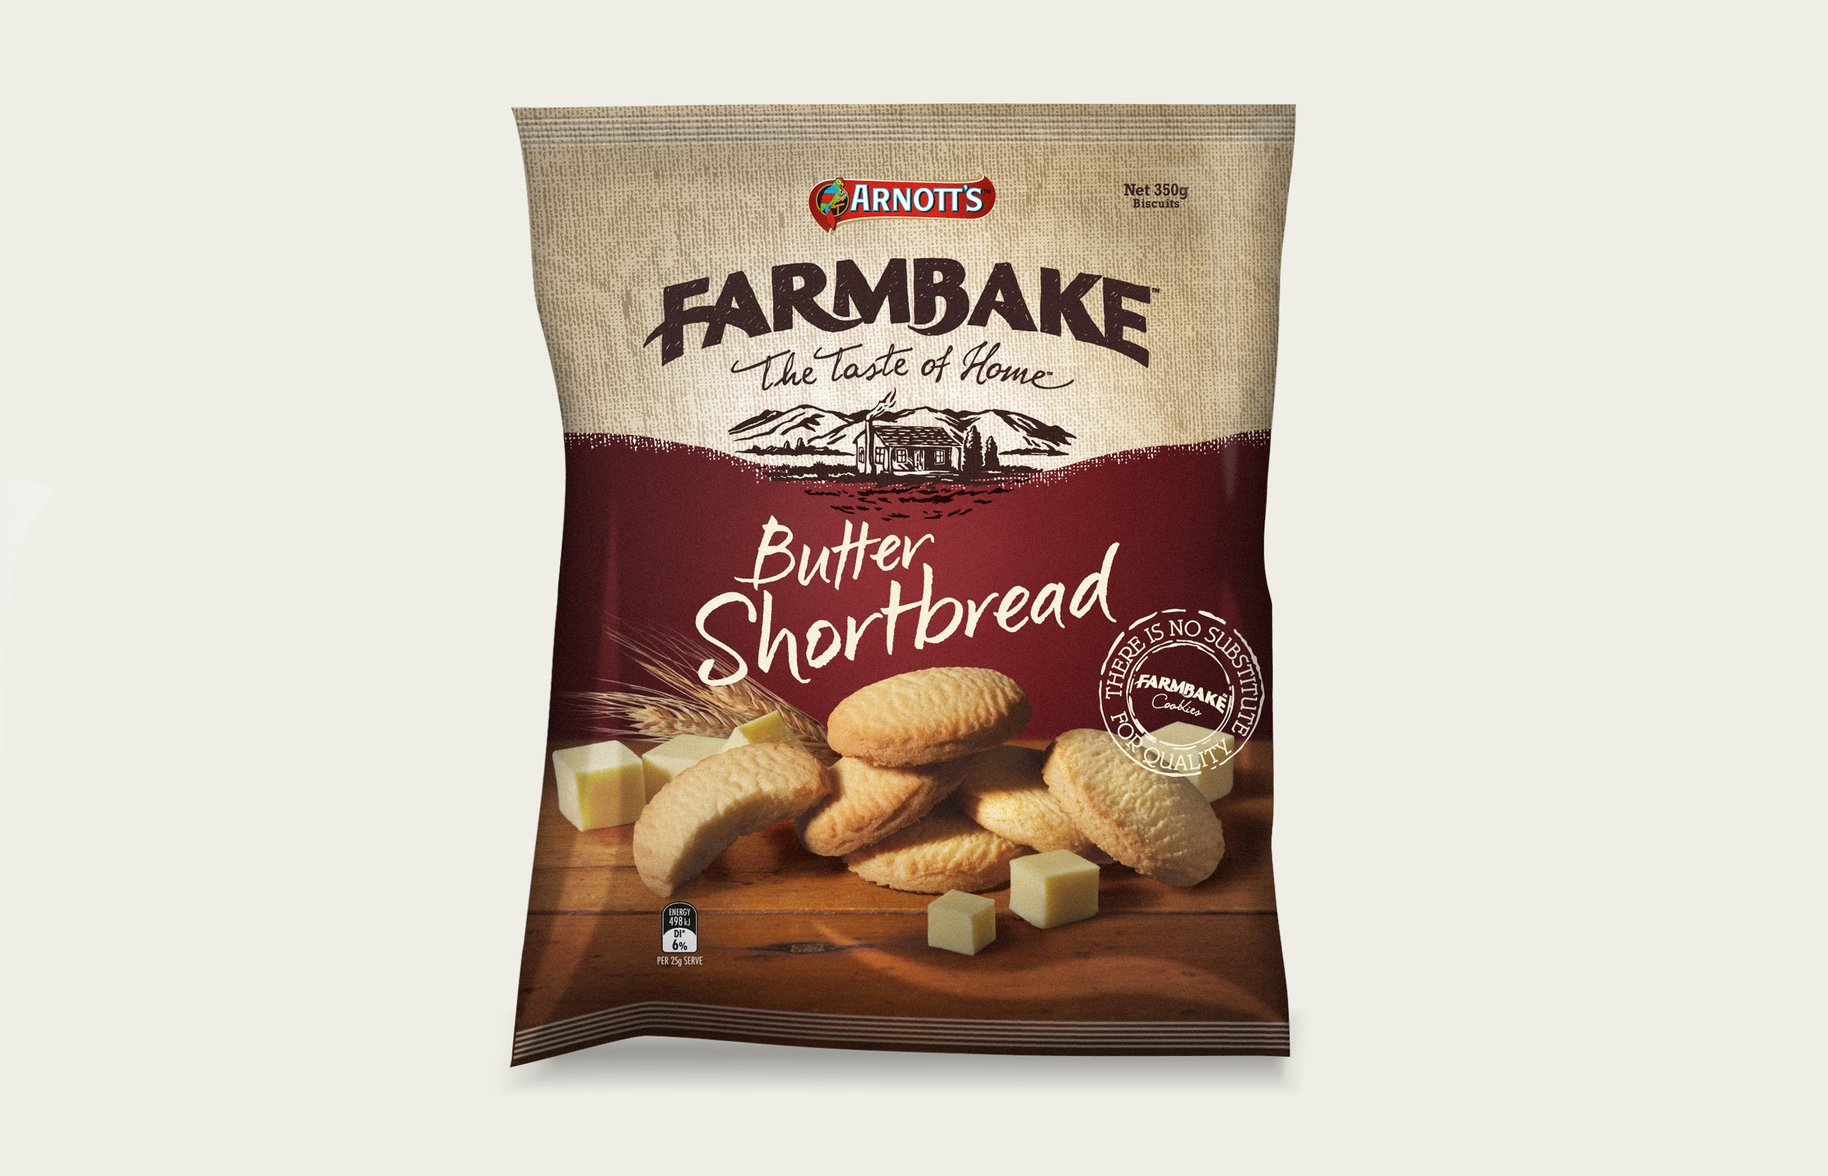 FarmBake Butter Shortbread Biscuits